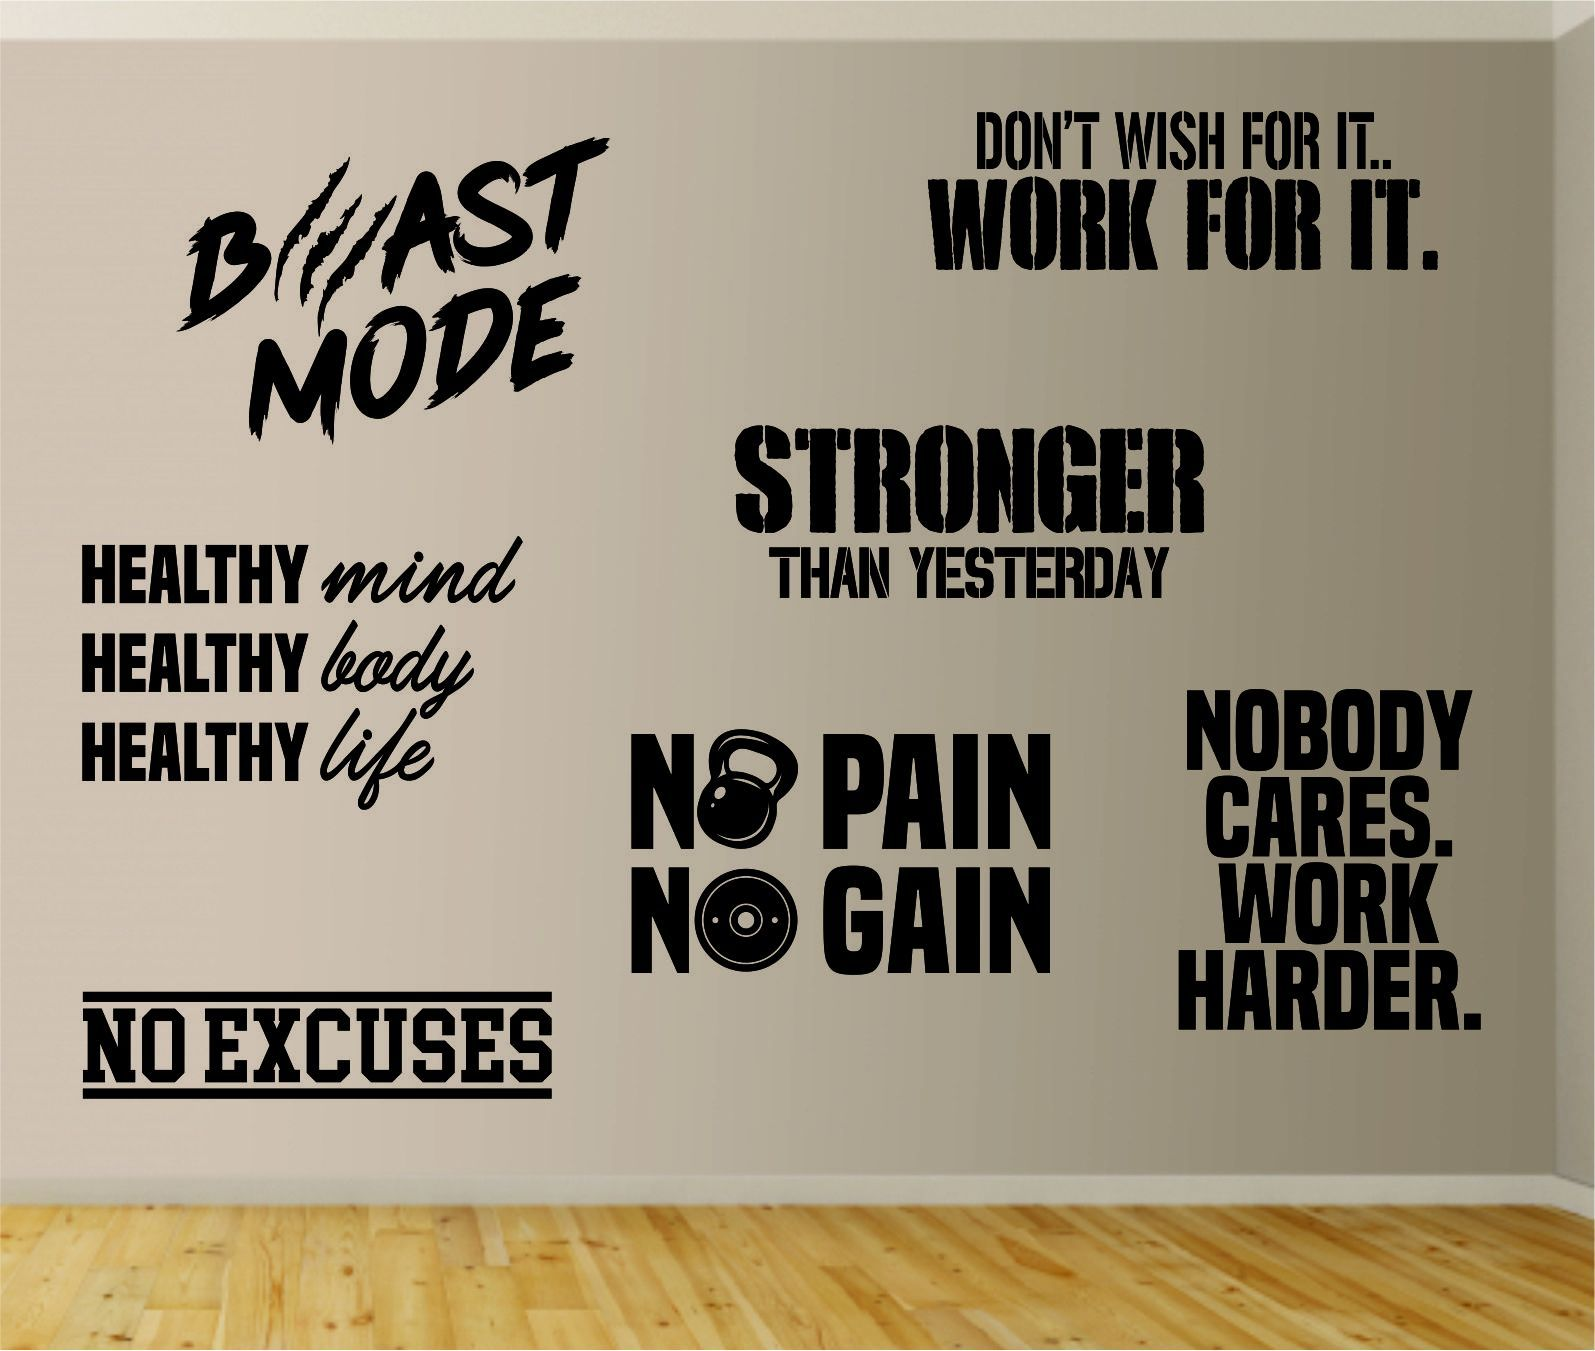 Gym Pack Set of 7 Designs Wall Decal Sticker Vinyl Art Wall Room Home Decor Quote Motivational Inspirational Fitness Health Lift Beast Train Exercise - teal